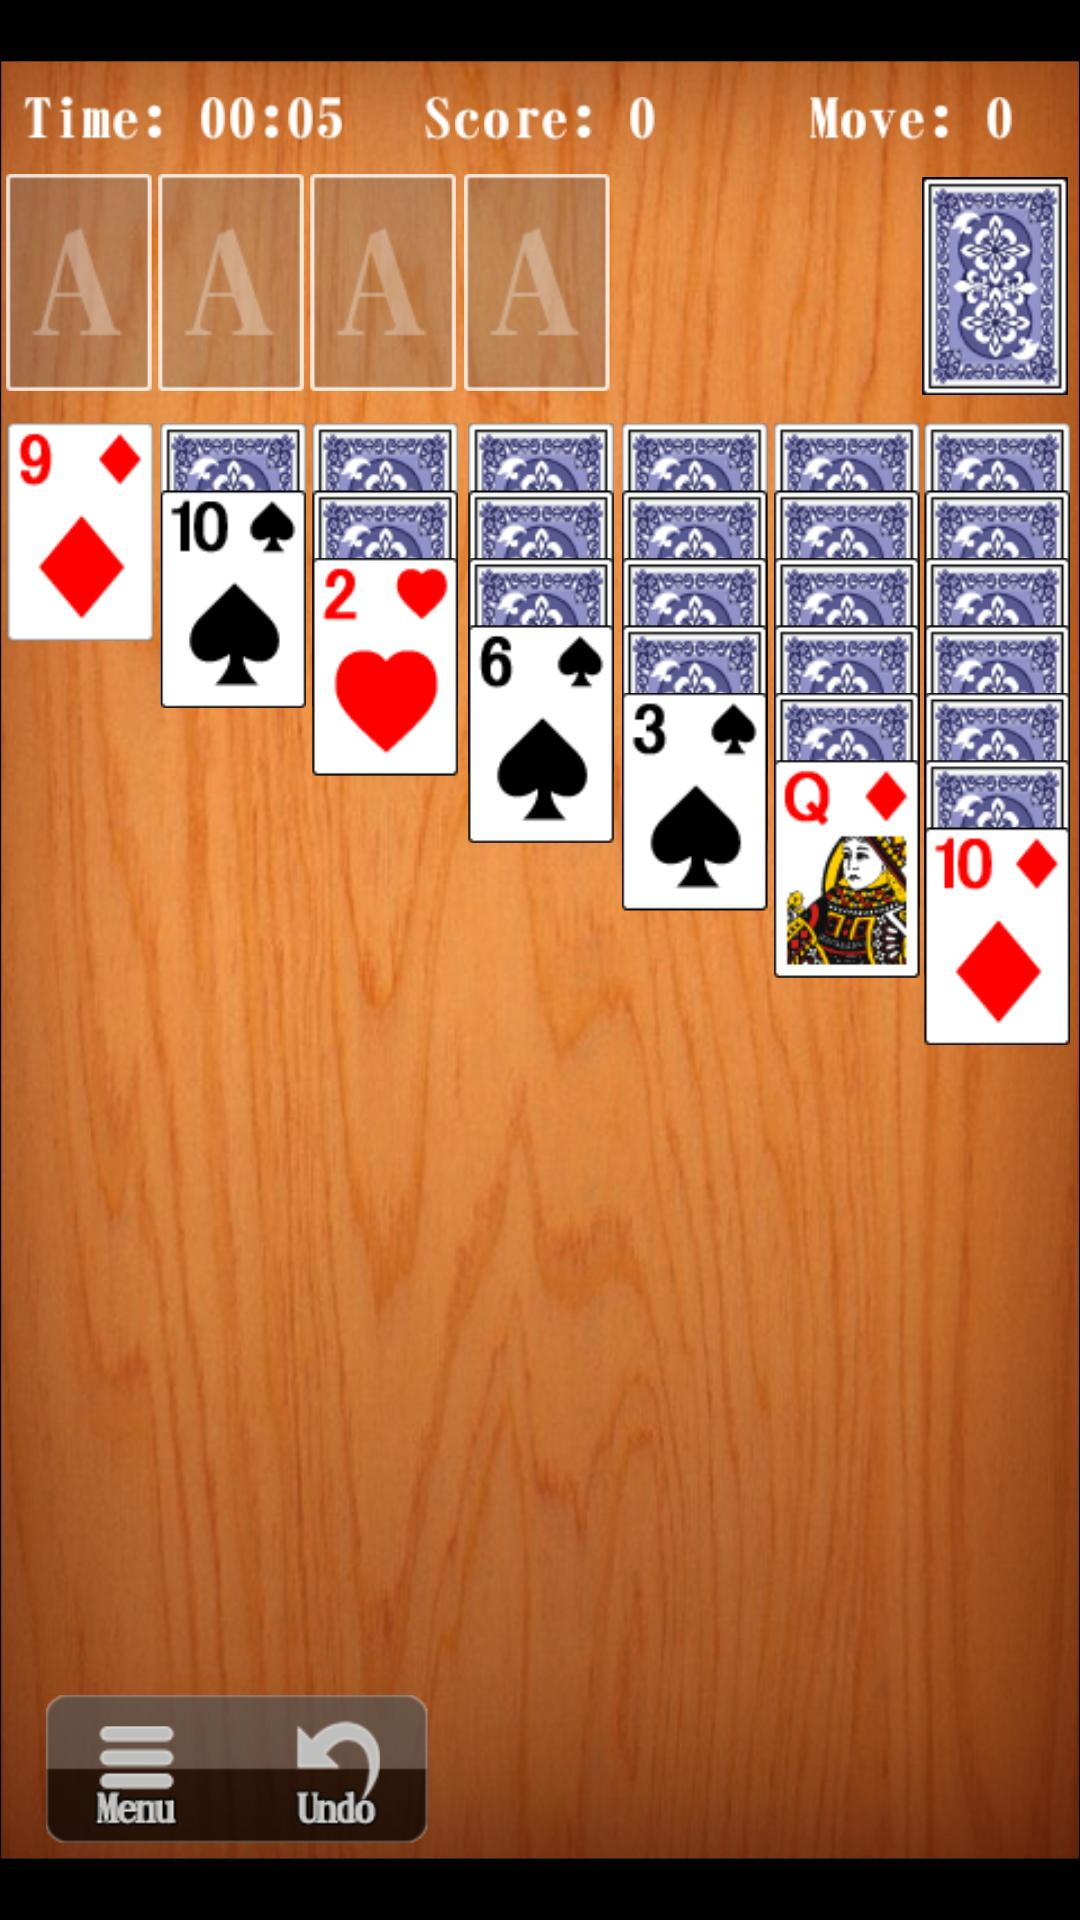 Solitaire 1.6.15 Screenshot 18